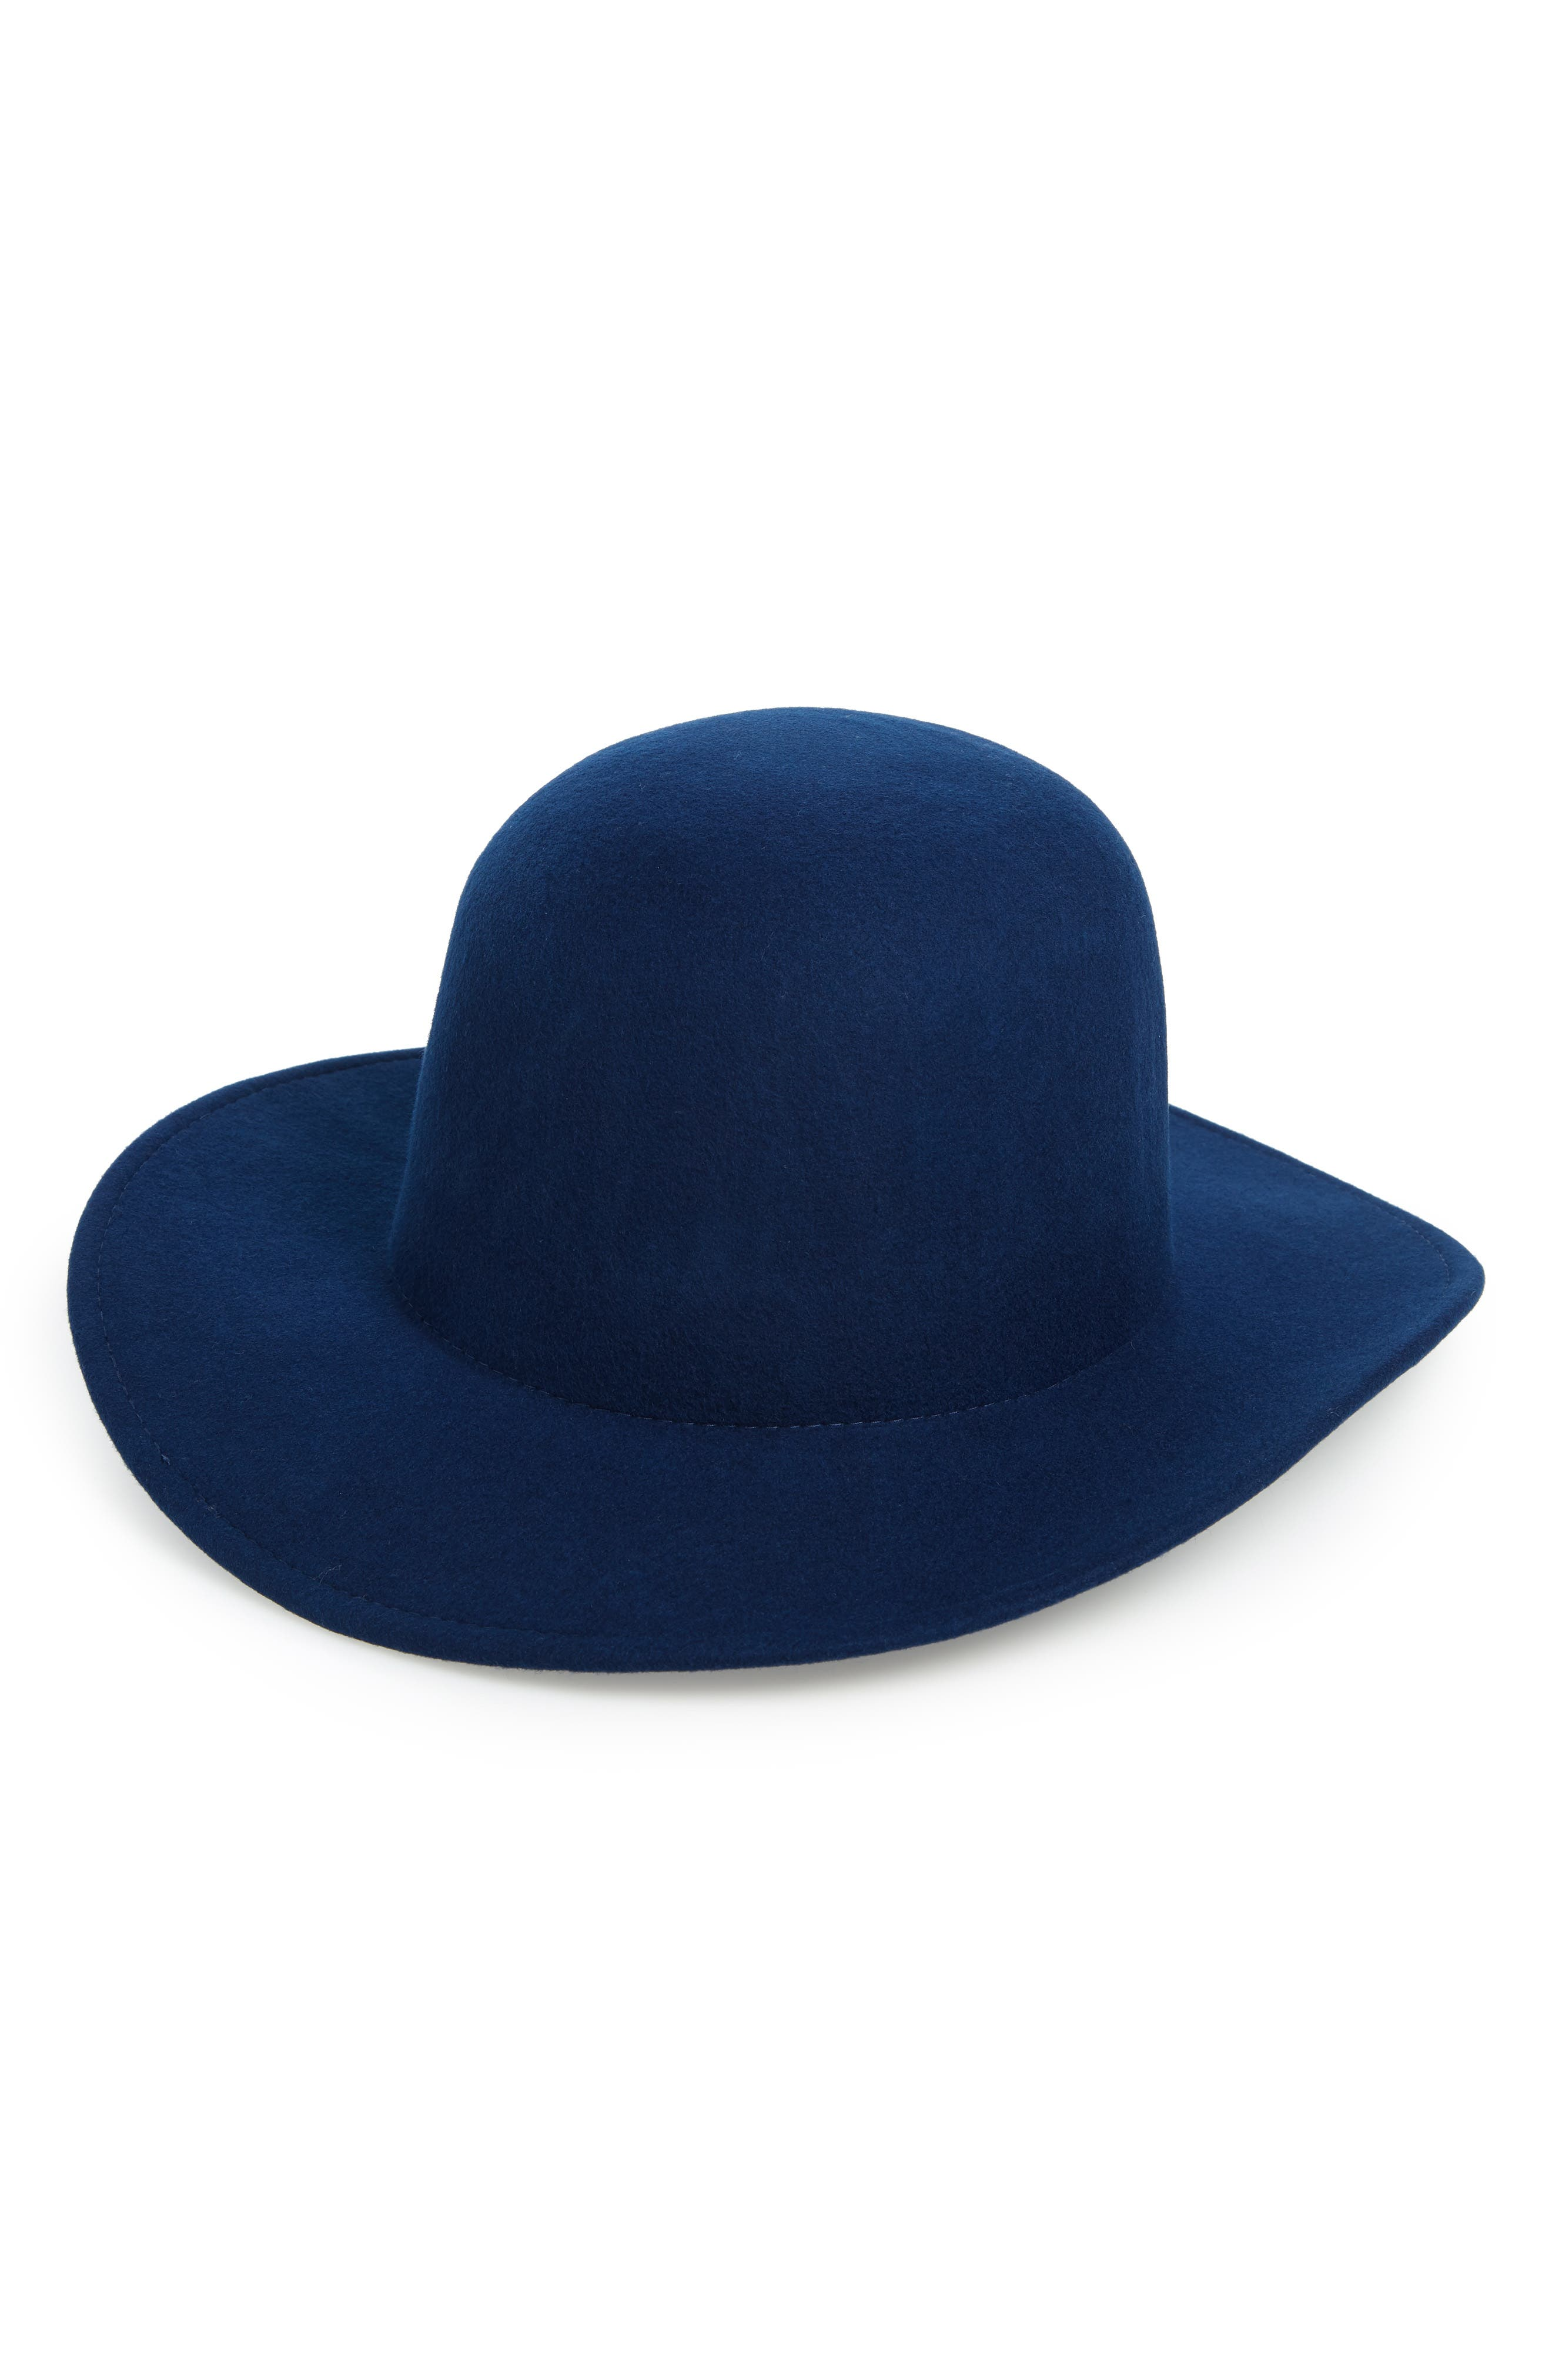 x Biltmore<sup>®</sup> Dome Felt Hat,                         Main,                         color, BLUE NIGHT